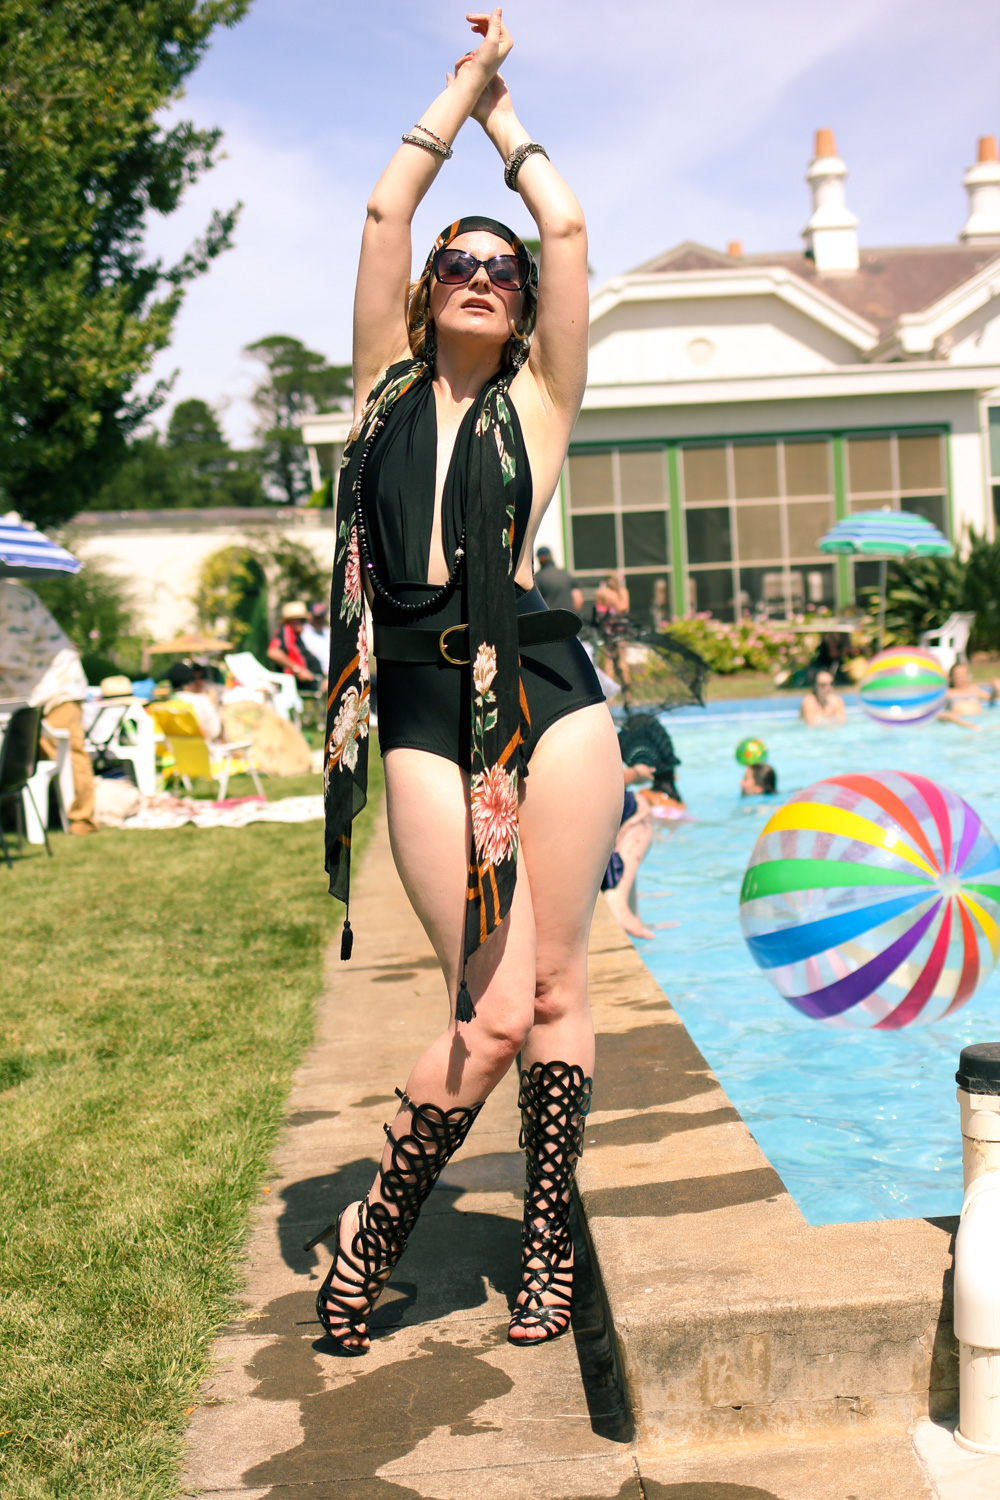 @findingfemme wears flapper swimwear to the art deco pool party at Mooramong Homestead.